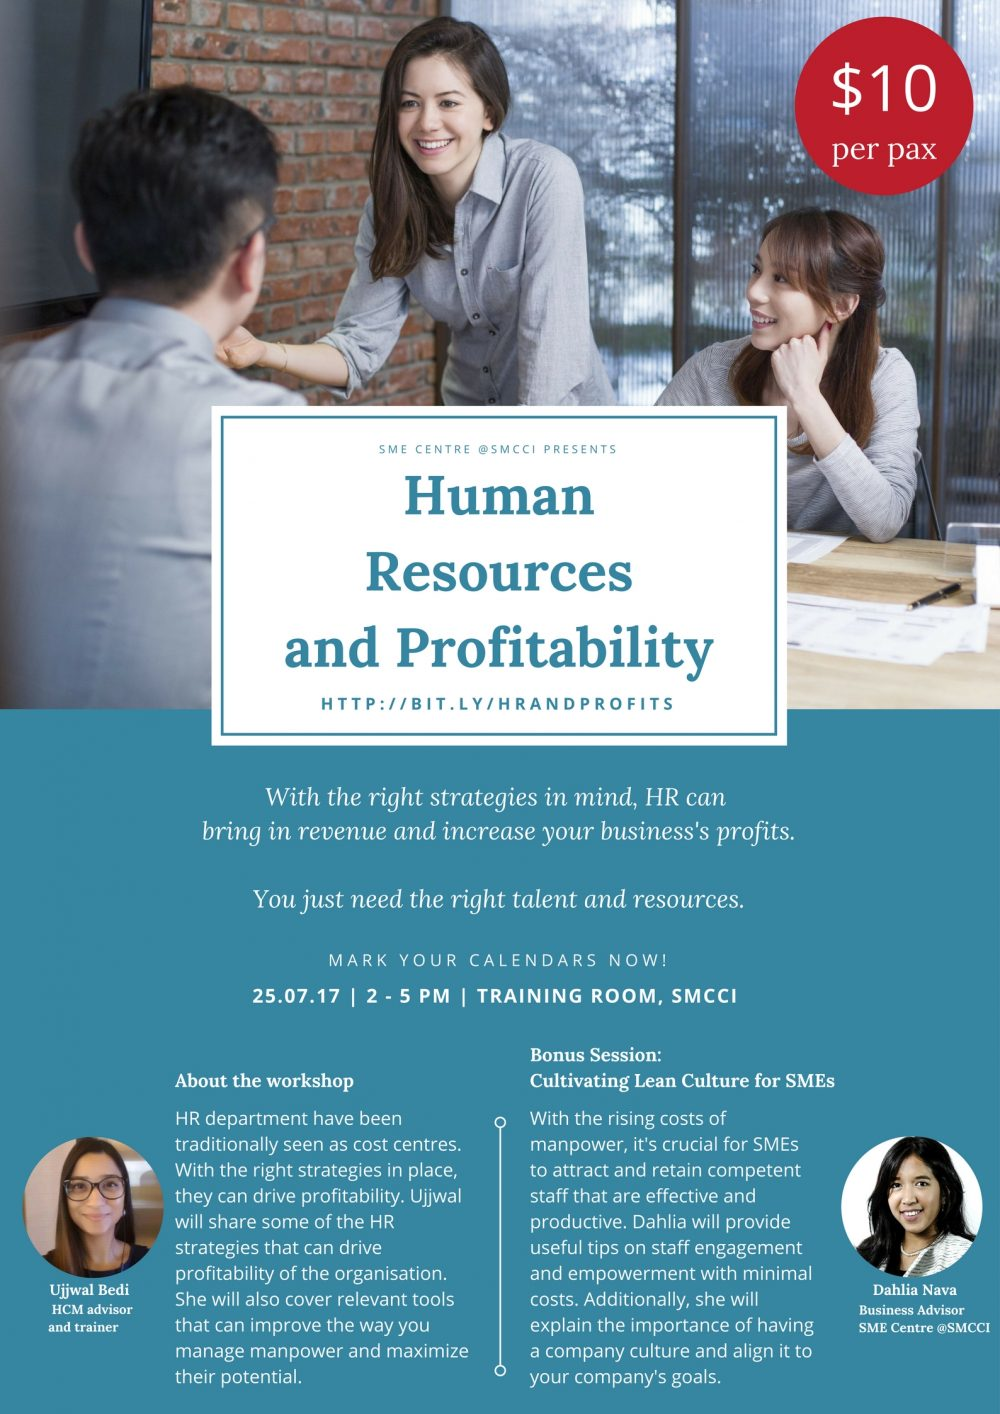 Human Resources and Profitability